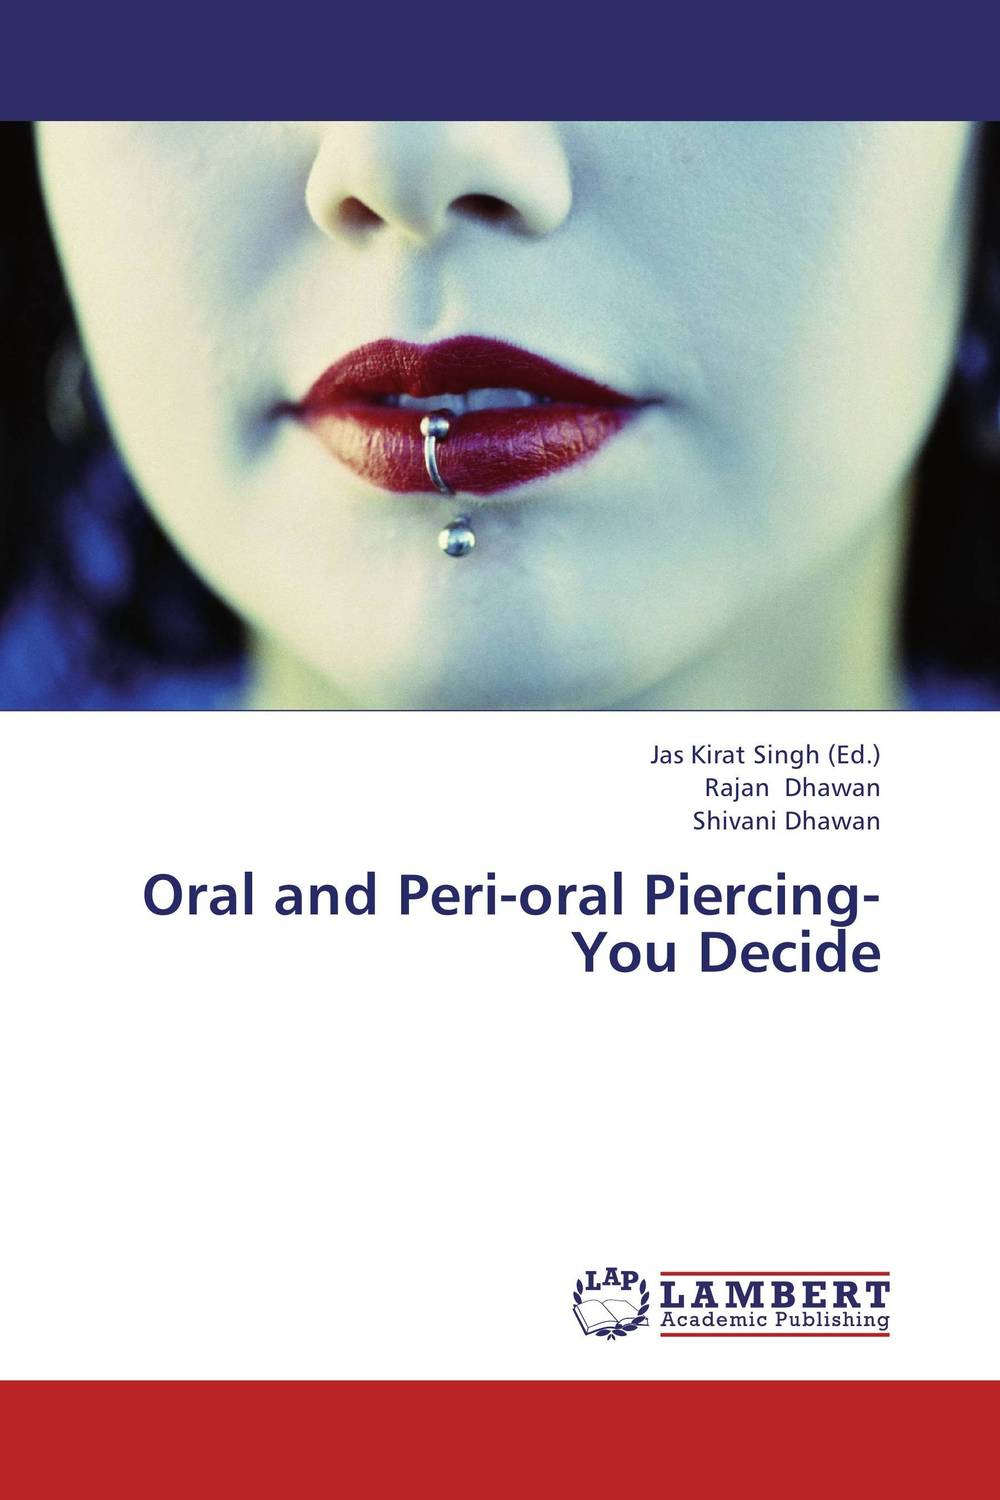 Oral and Peri-oral Piercing-You Decide about you кардиган